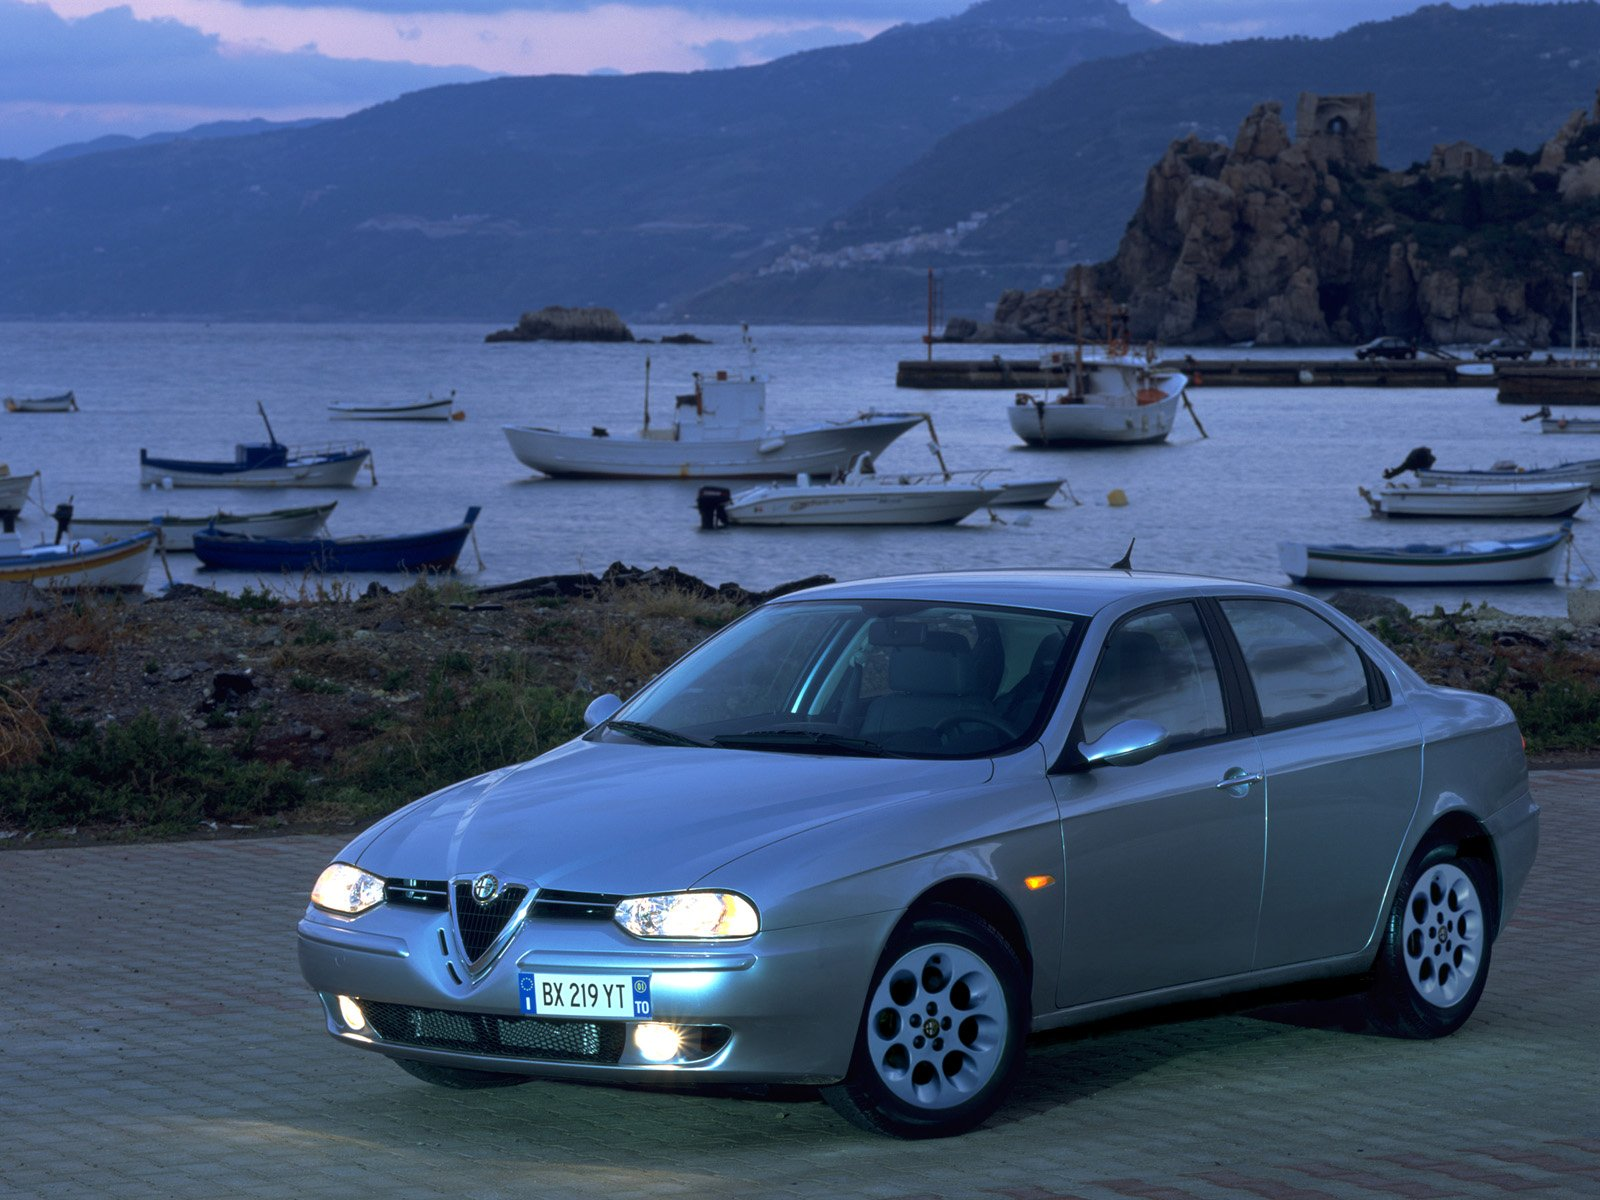 alfa romeo 156 1998 un sedan con perfil bajo taringa. Black Bedroom Furniture Sets. Home Design Ideas